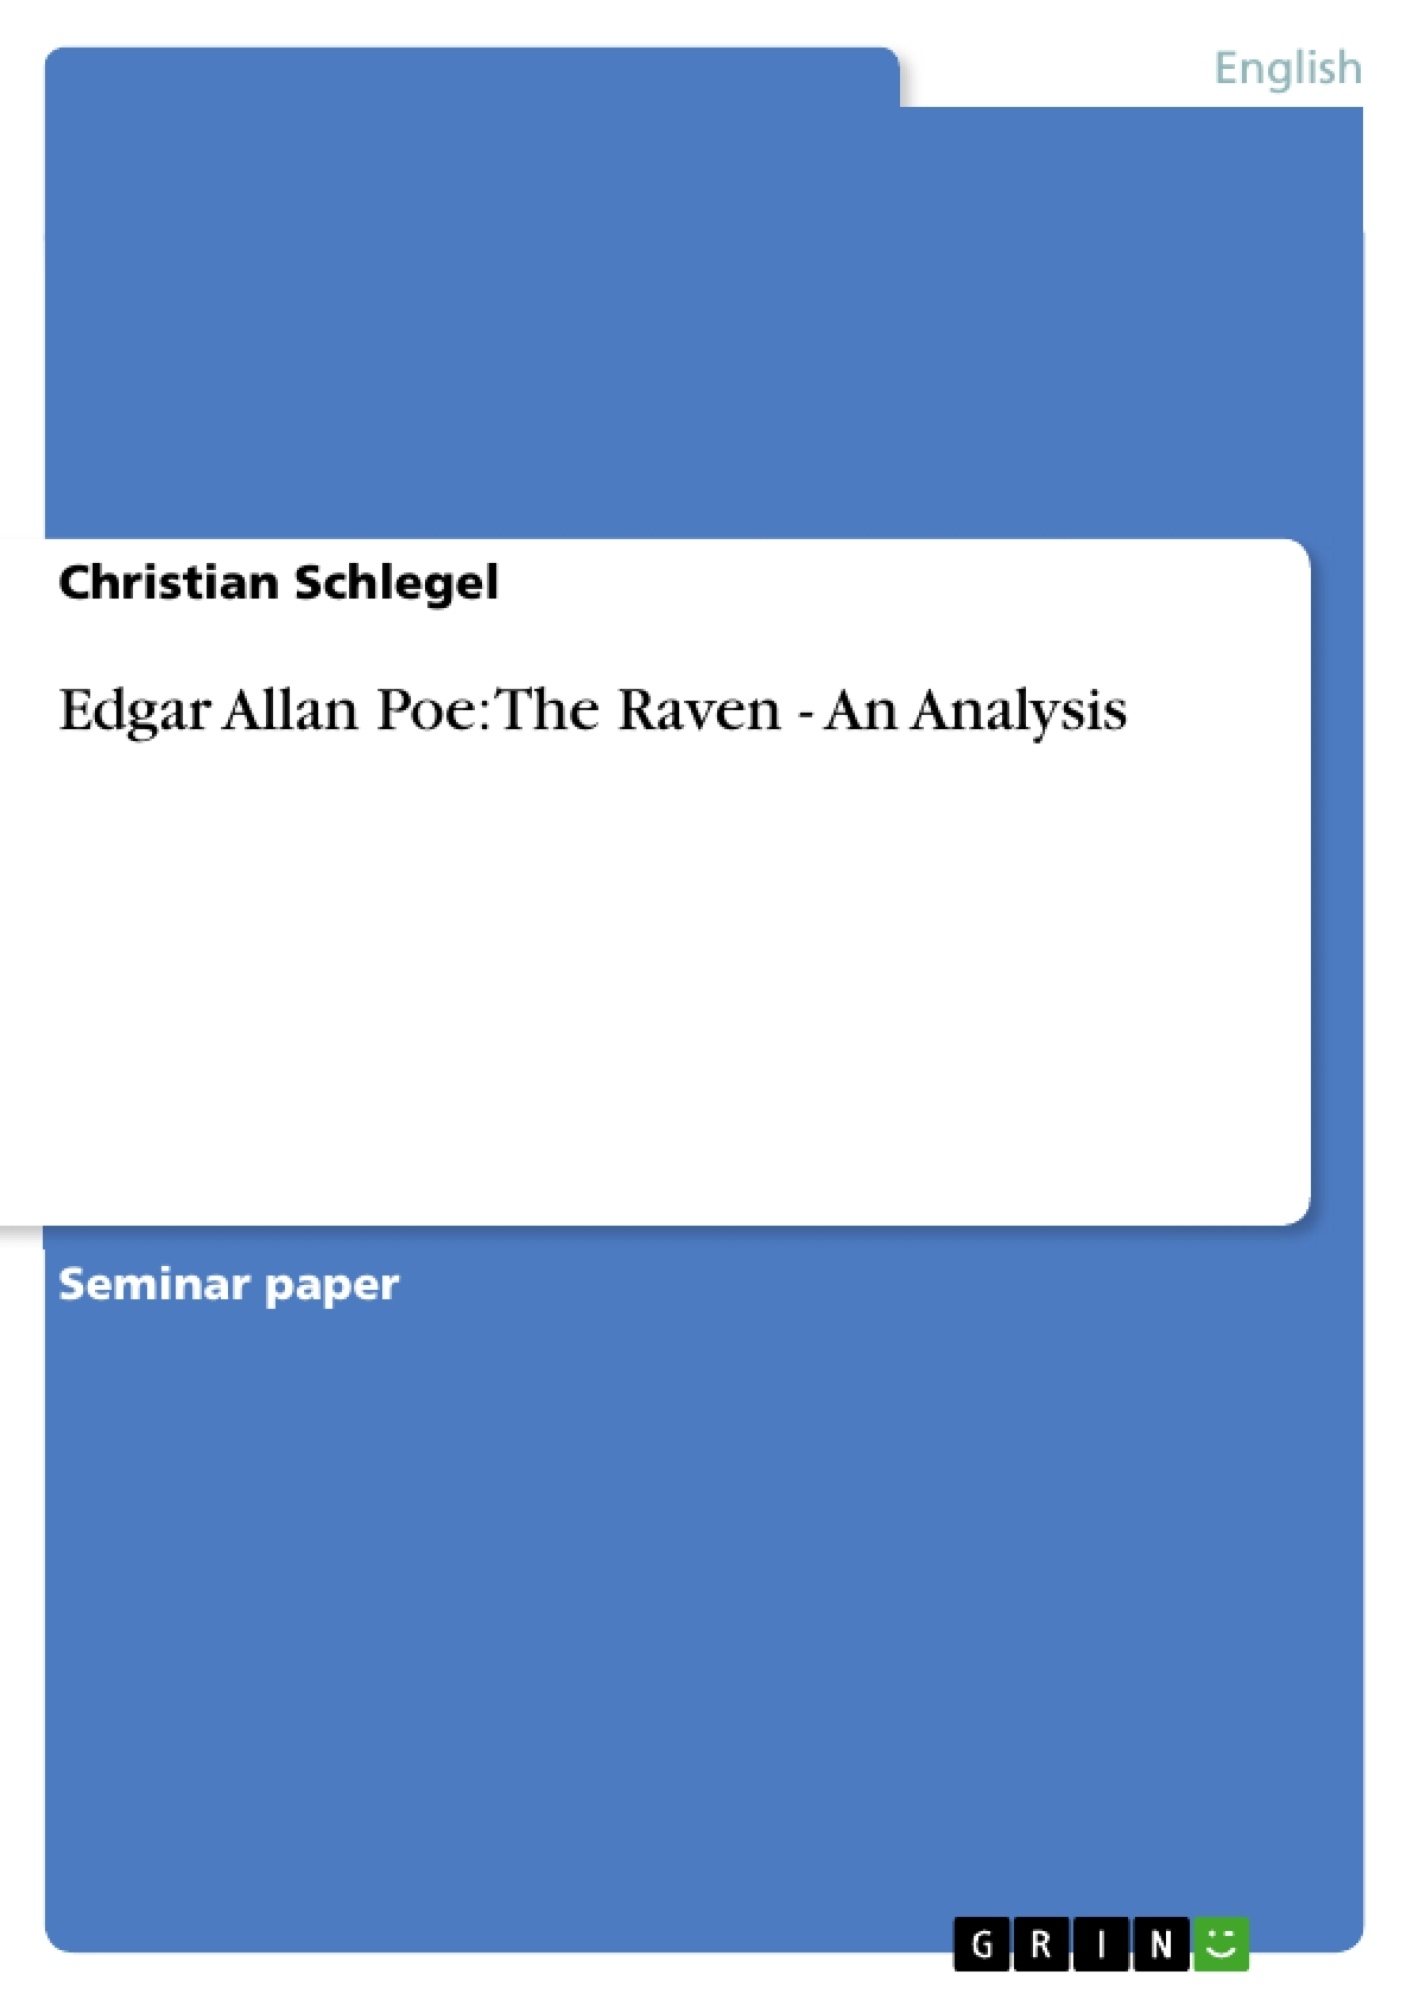 edgar allan poe the raven an analysis publish your master s  edgar allan poe the raven an analysis publish your master s thesis bachelor s thesis essay or term paper